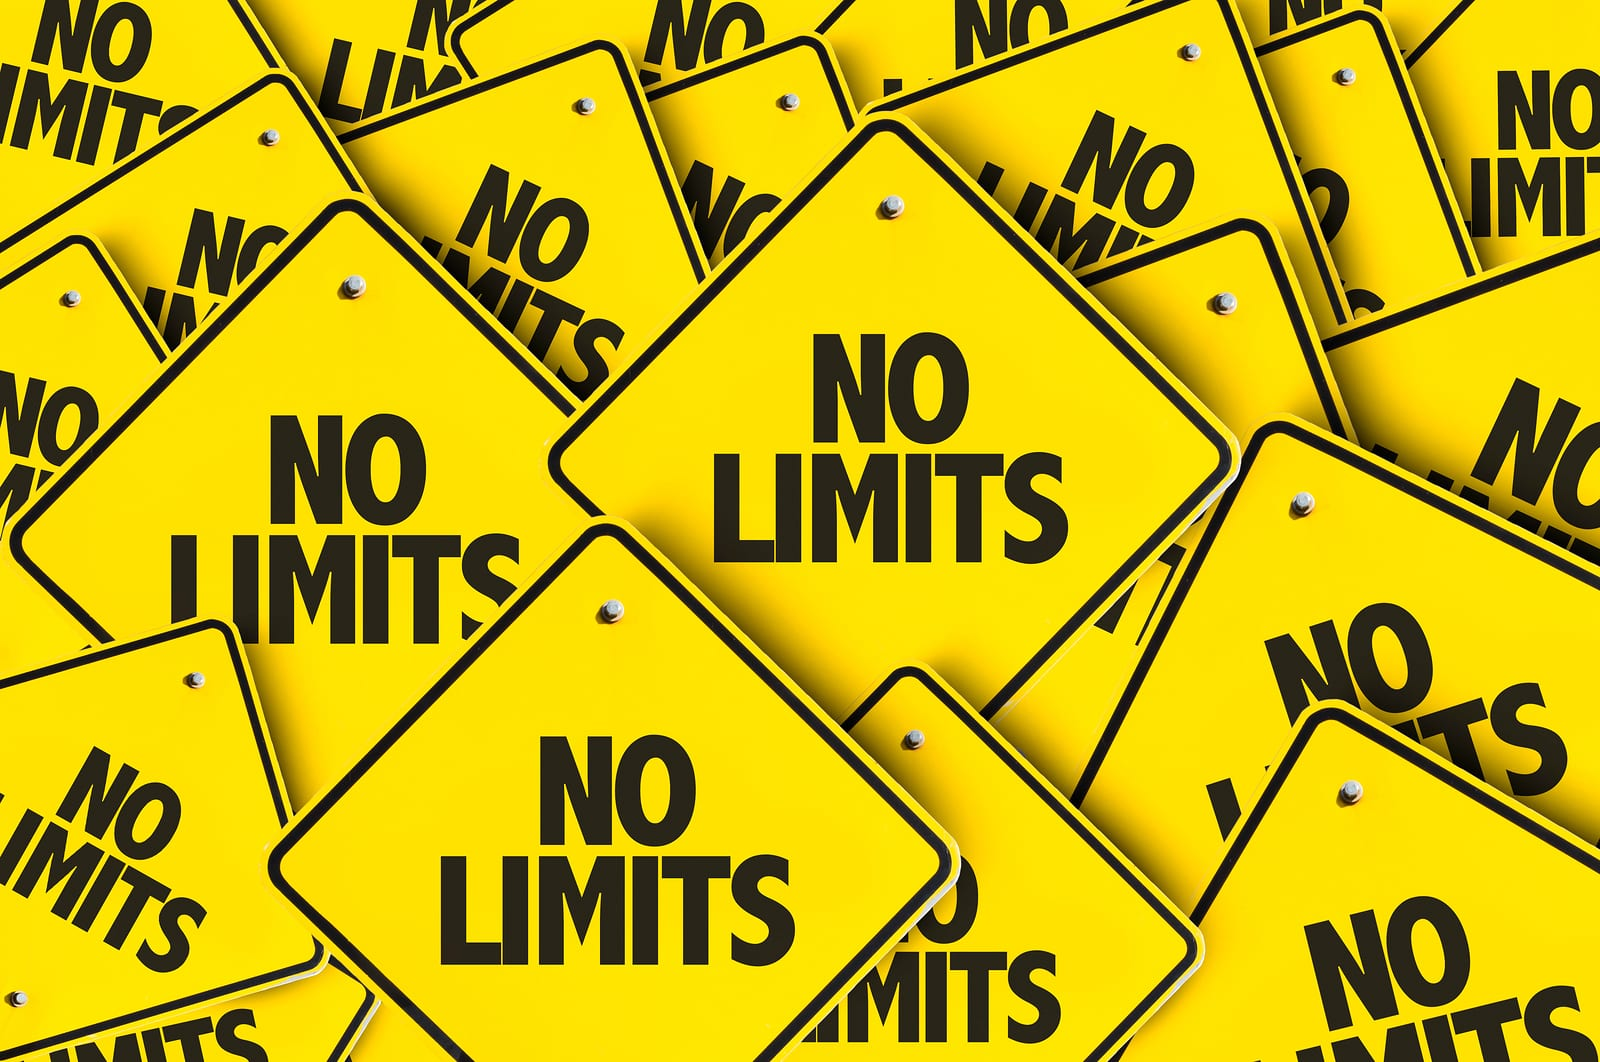 No Limits signs